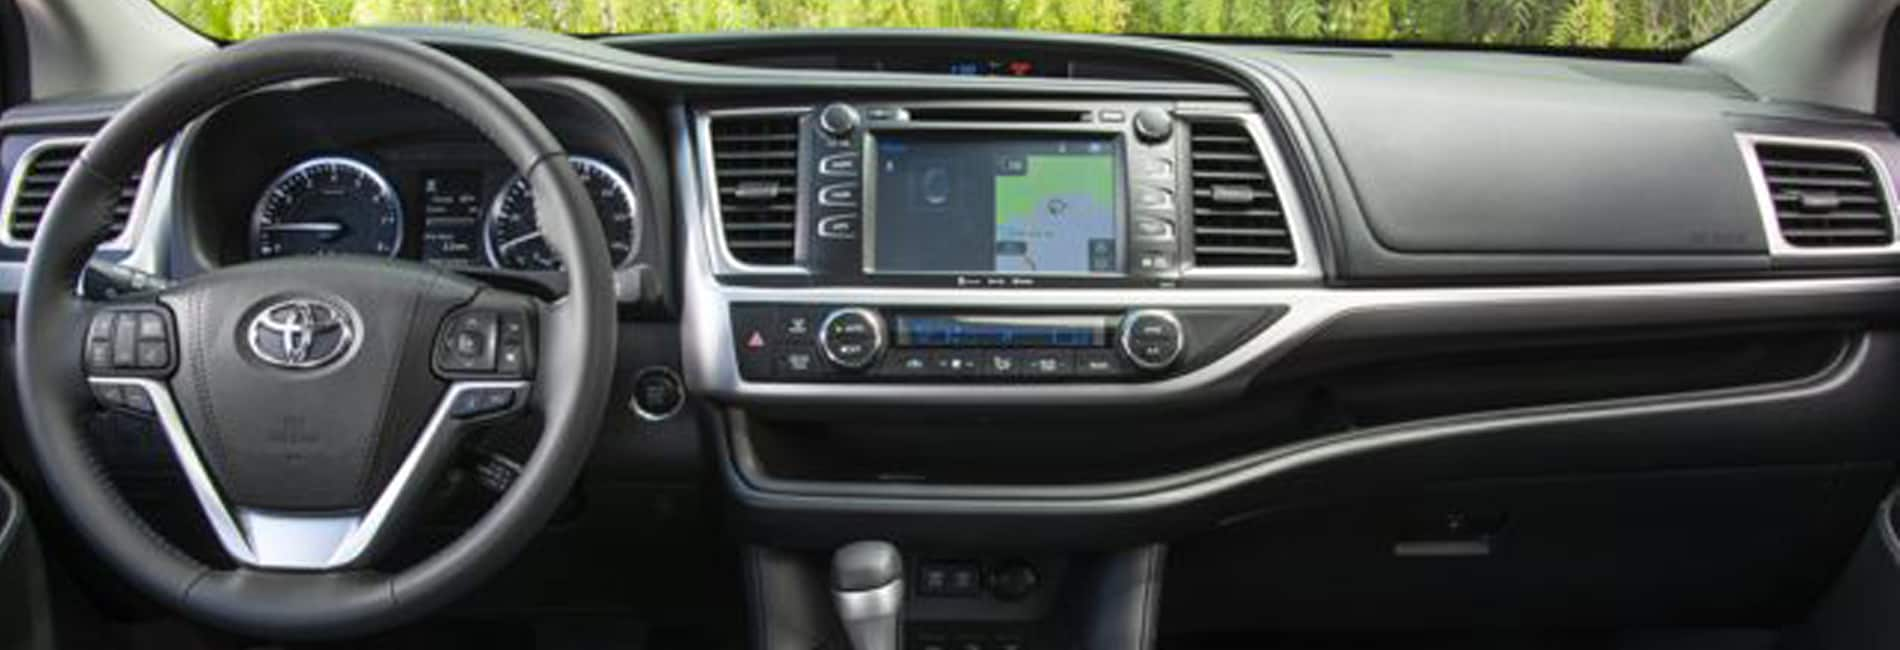 Toyota Highlander Interior Vehicle Features